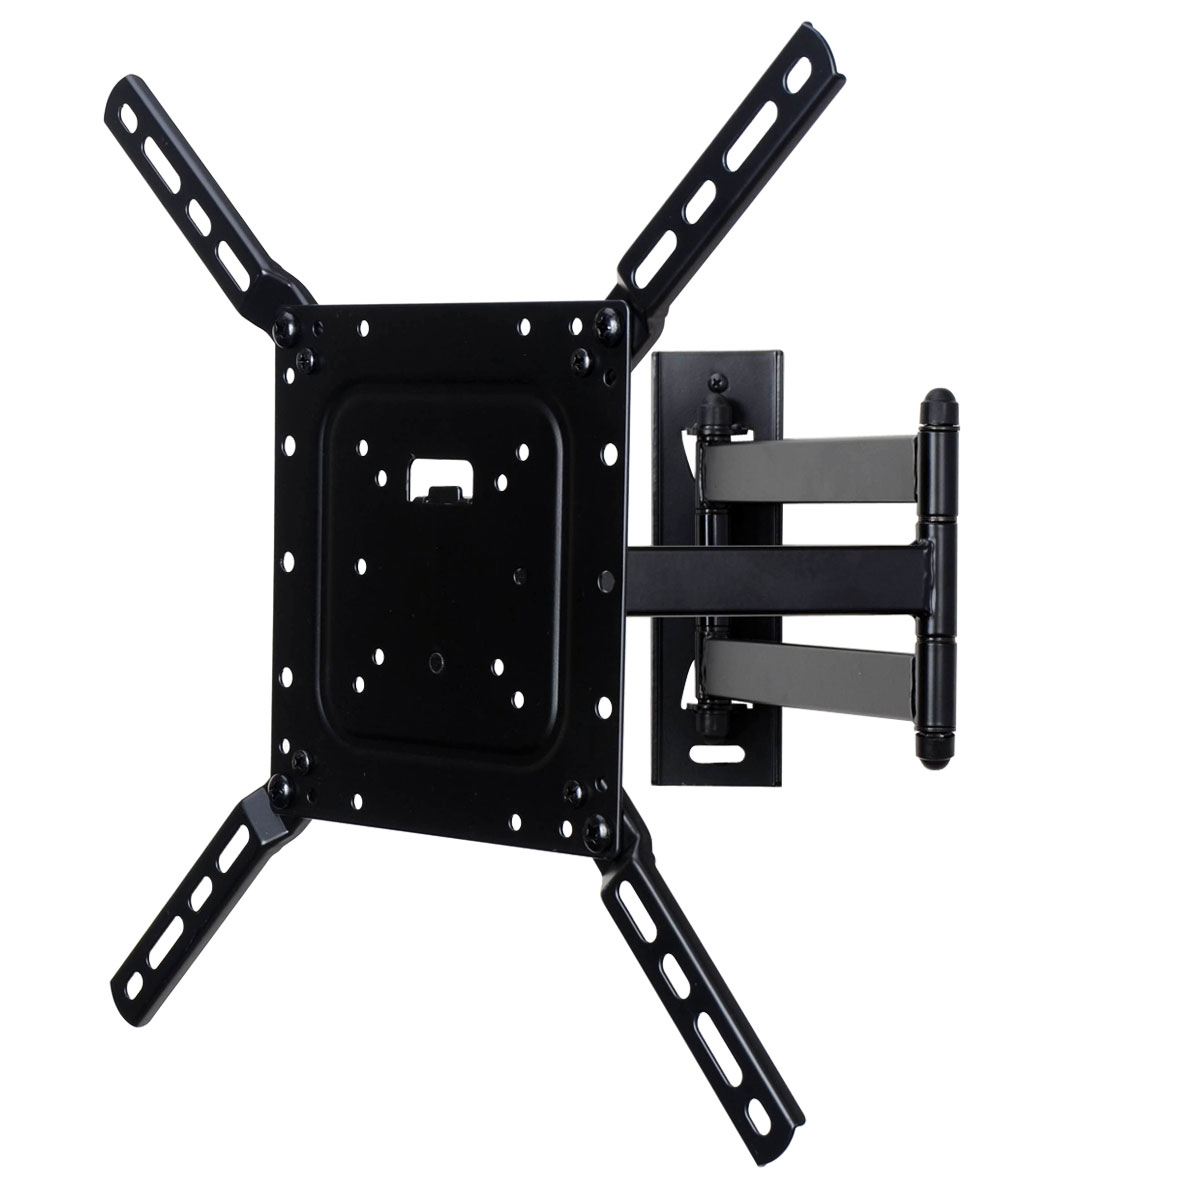 "VideoSecu Articulating TV Wall Mount for most VIZIO 22-55"" LCD LED E390i-B1E E420i-A1 M502i-B1 E500i-B1 E55-C2 Tilt CB6"